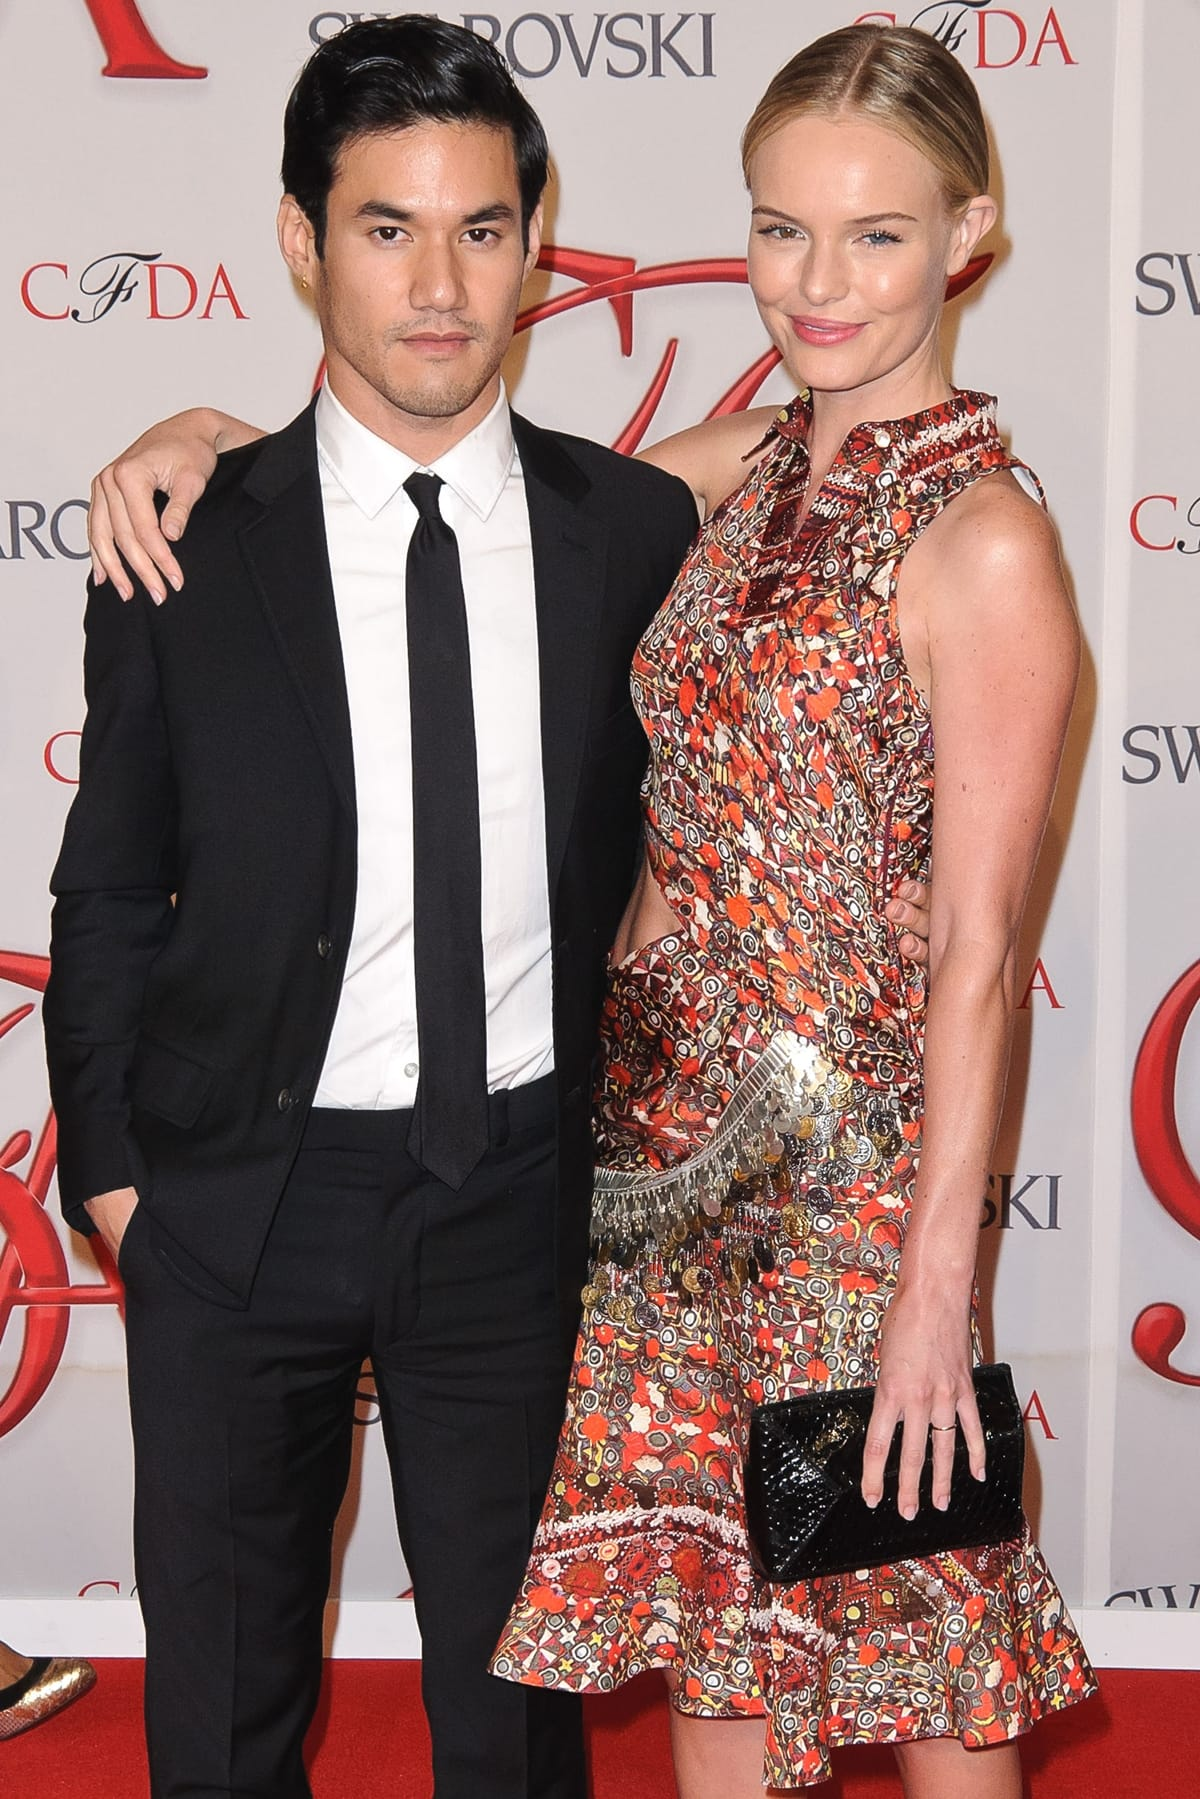 Posing with Kate Bosworth, French-American luxury women's ready-to-wear clothing designer Joseph Altuzarra launched his brand in New York in 2008